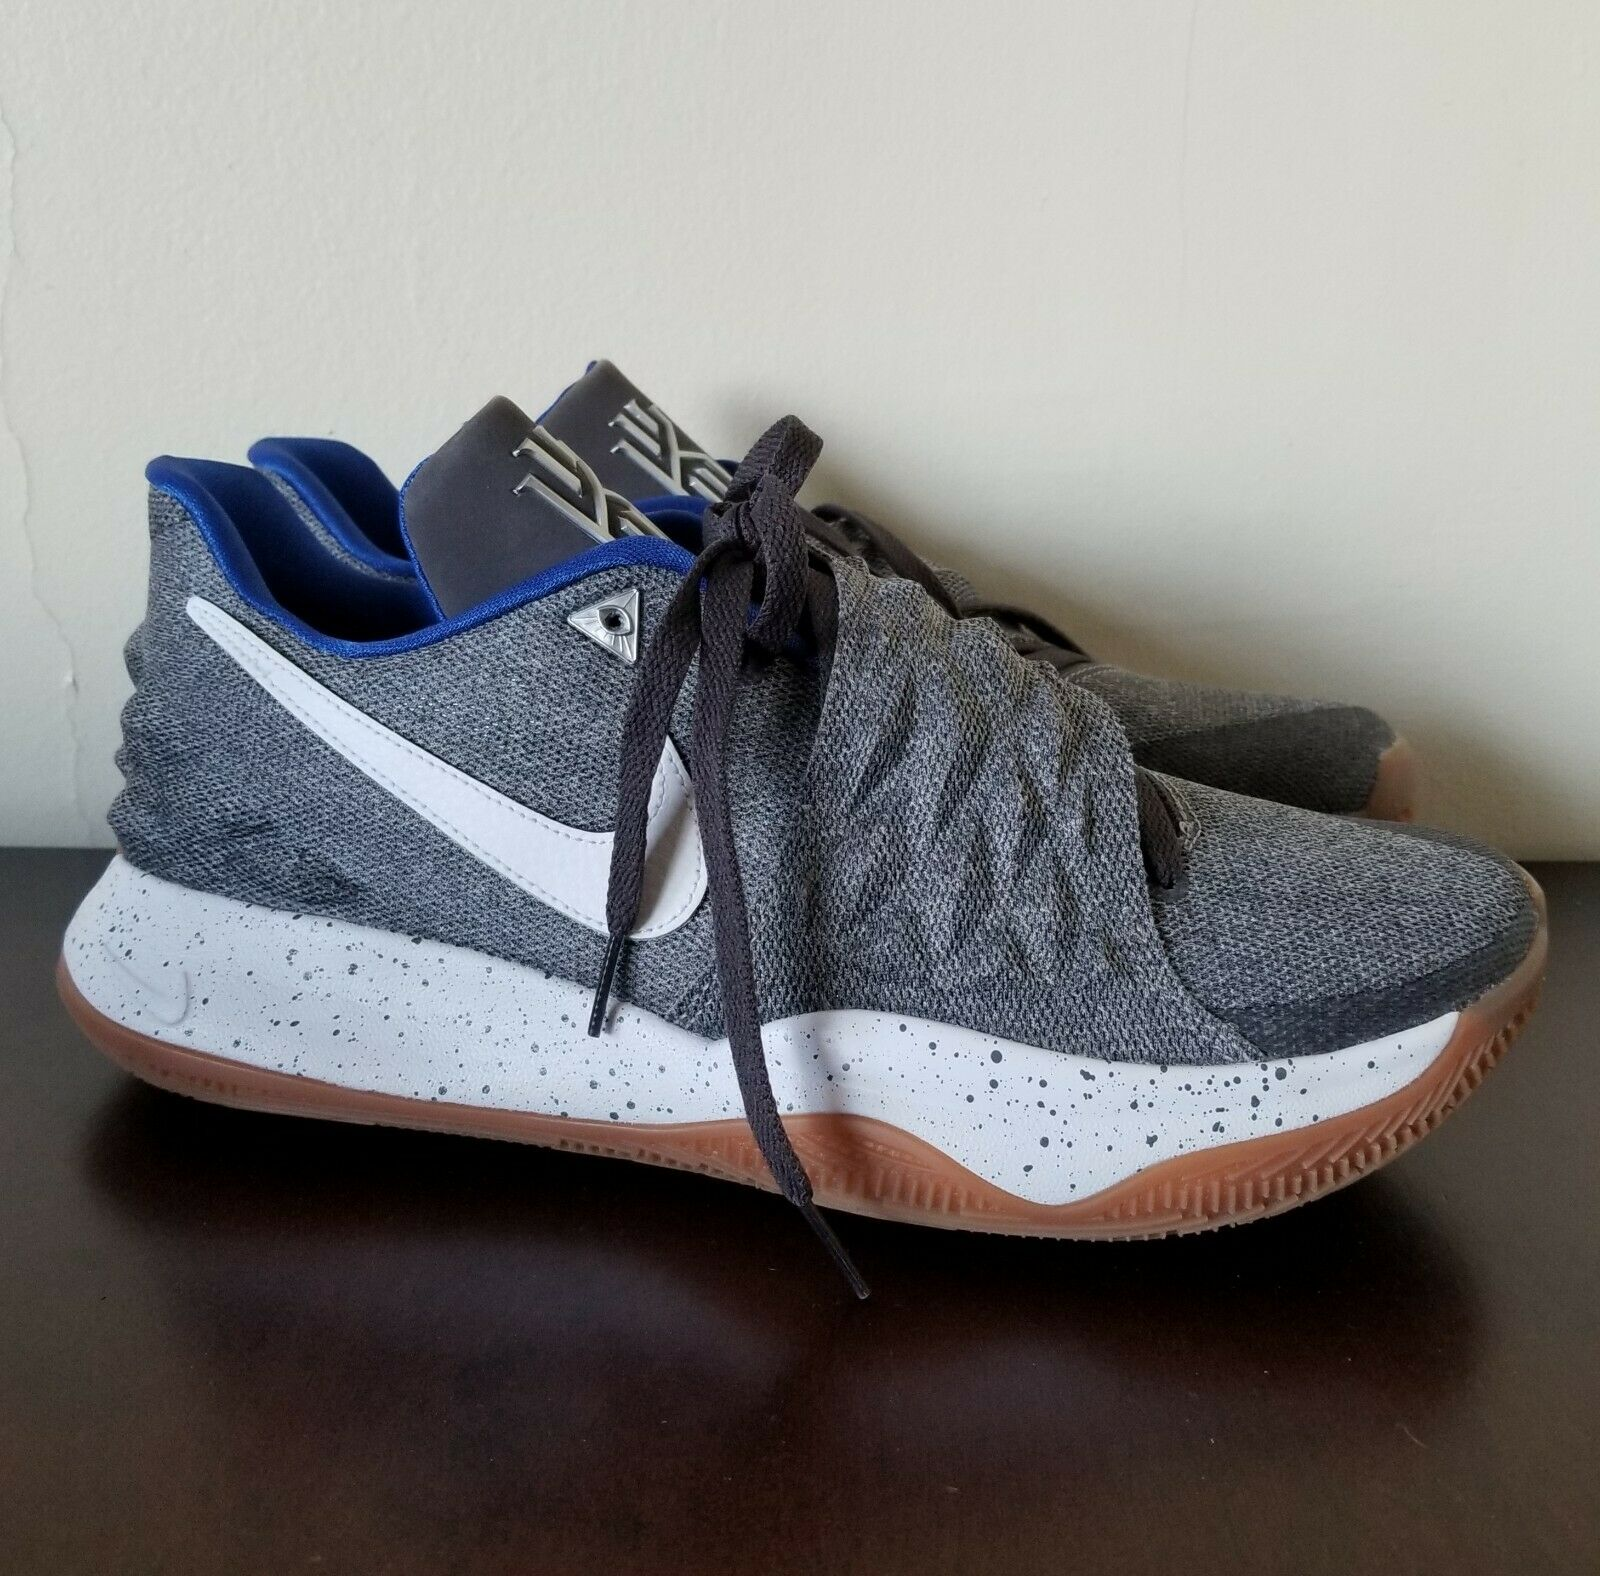 Nike Kyrie Low Uncle Drew DS Grey Gum Mens Basketball shoes Sz 11.5 AO8979-005